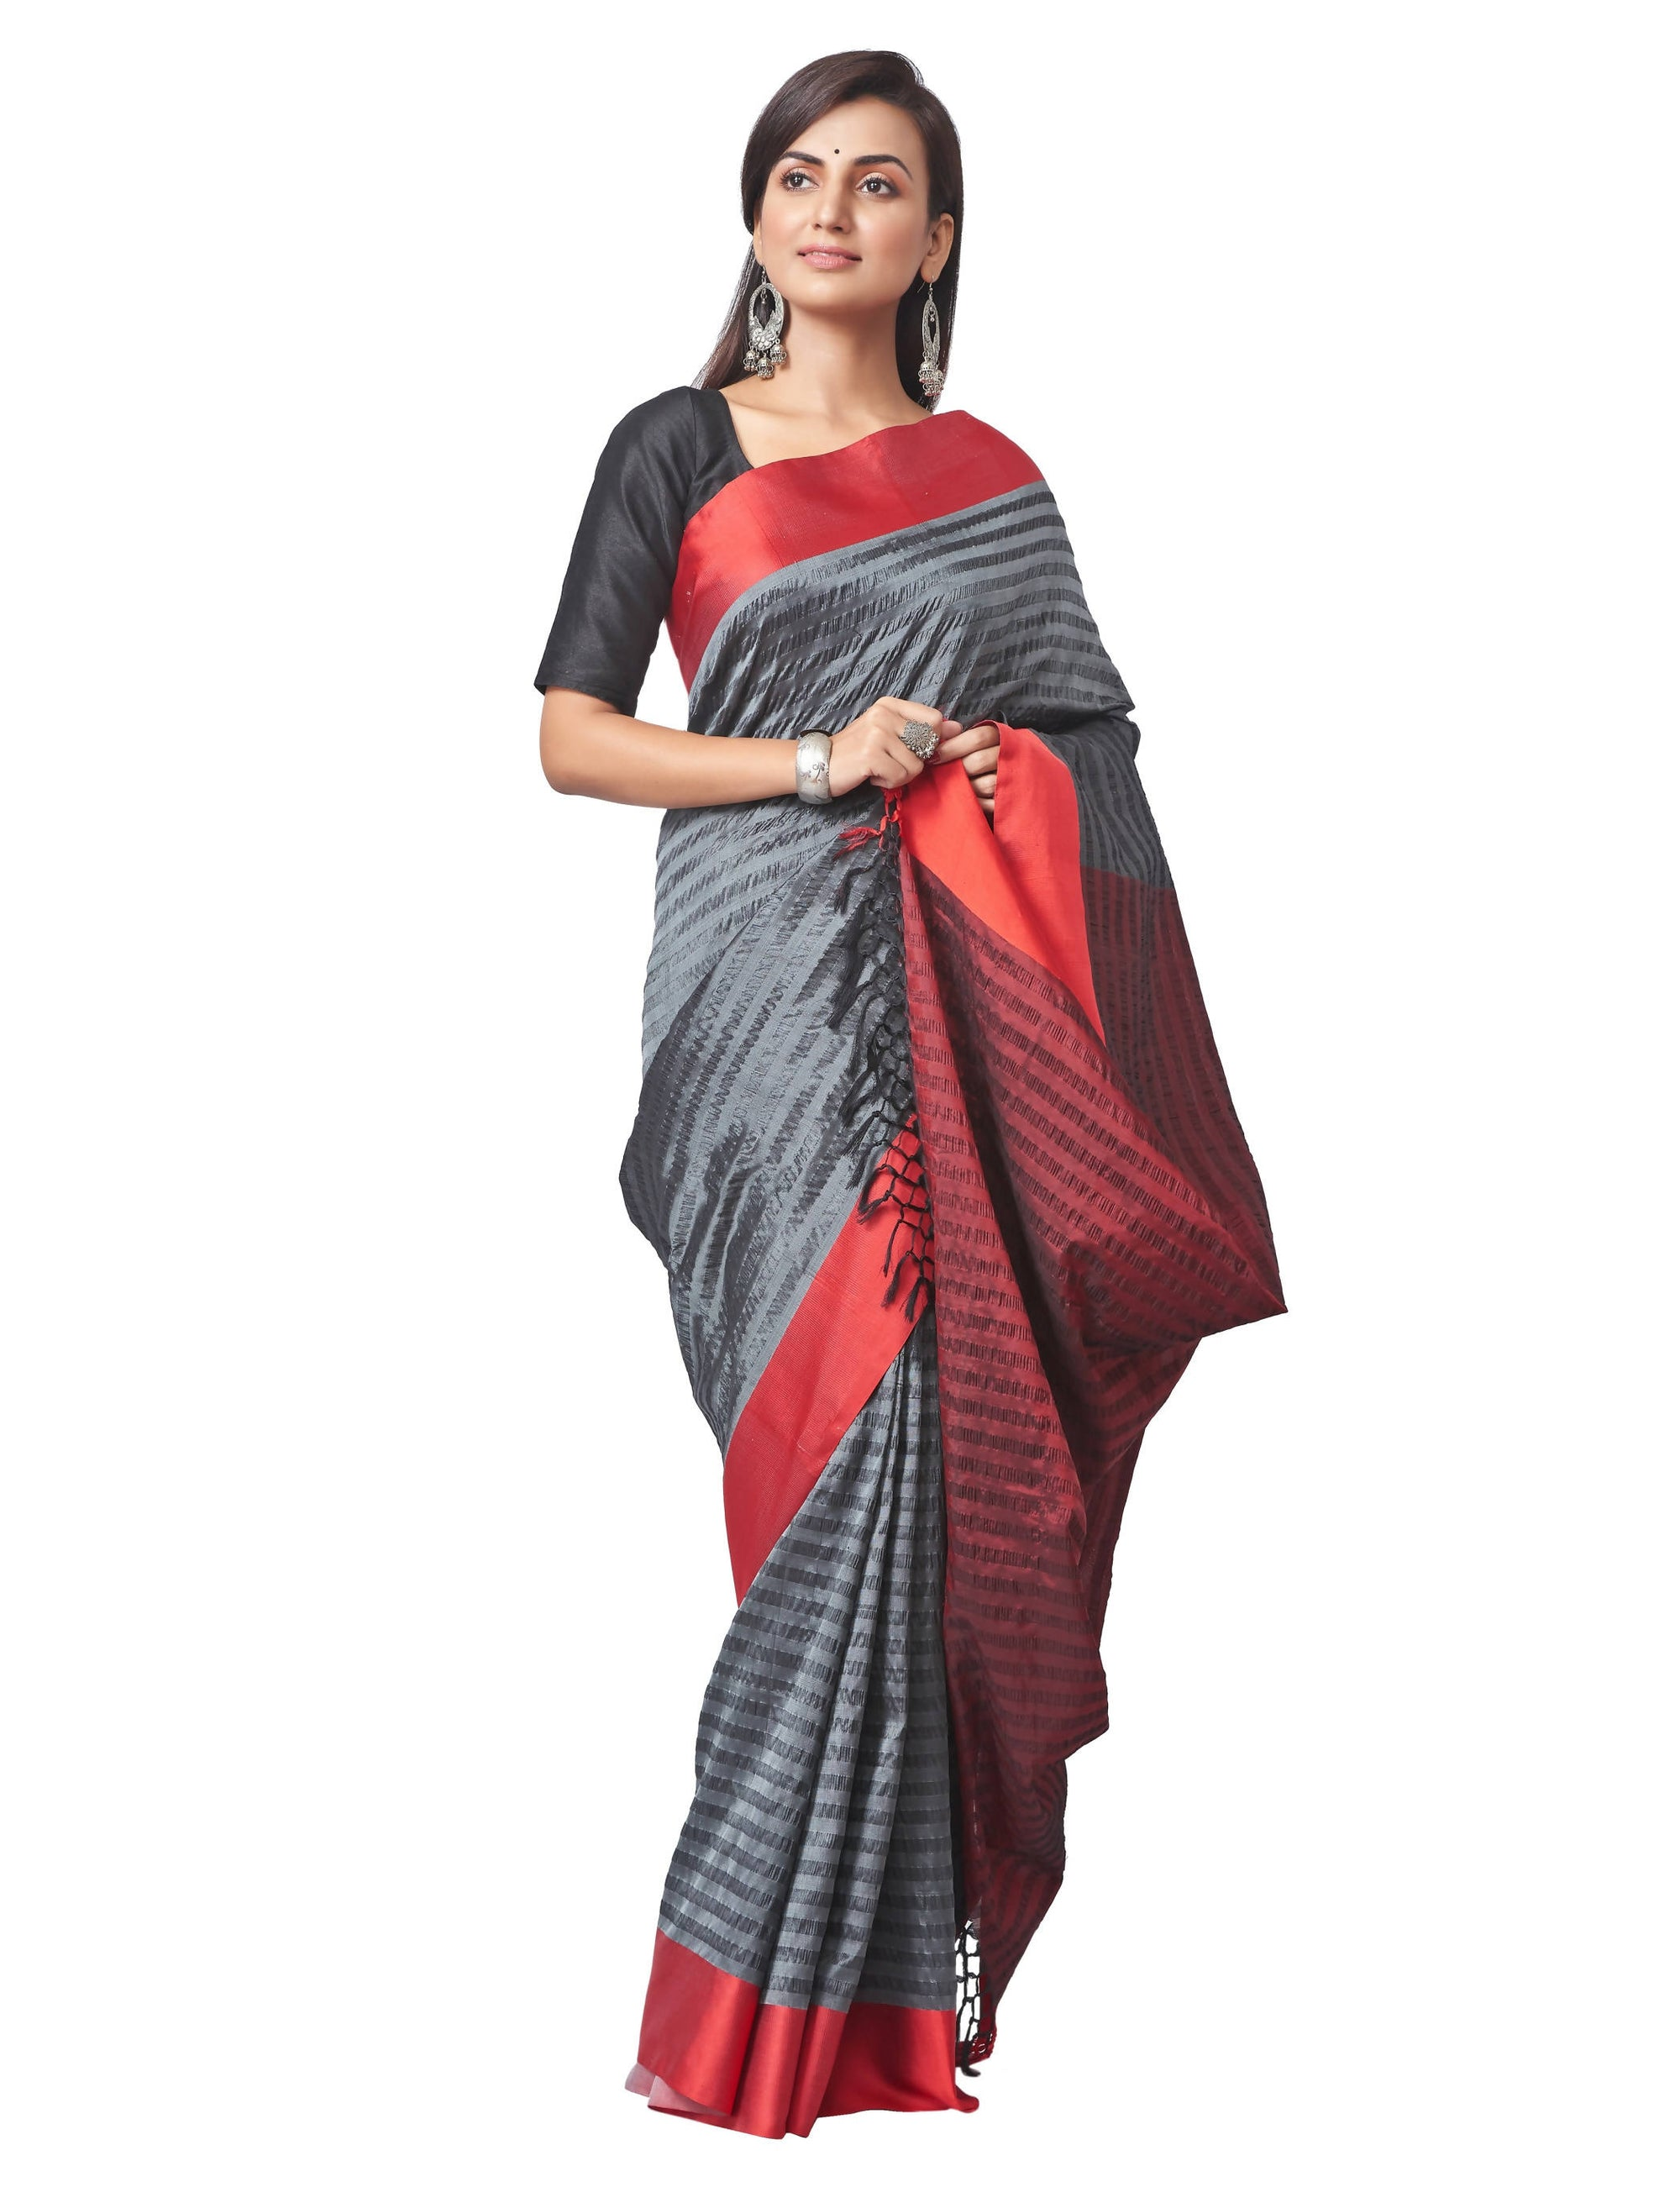 Biswa Bangla Handloom Seer Sucker Silk Saree - Grey & Red